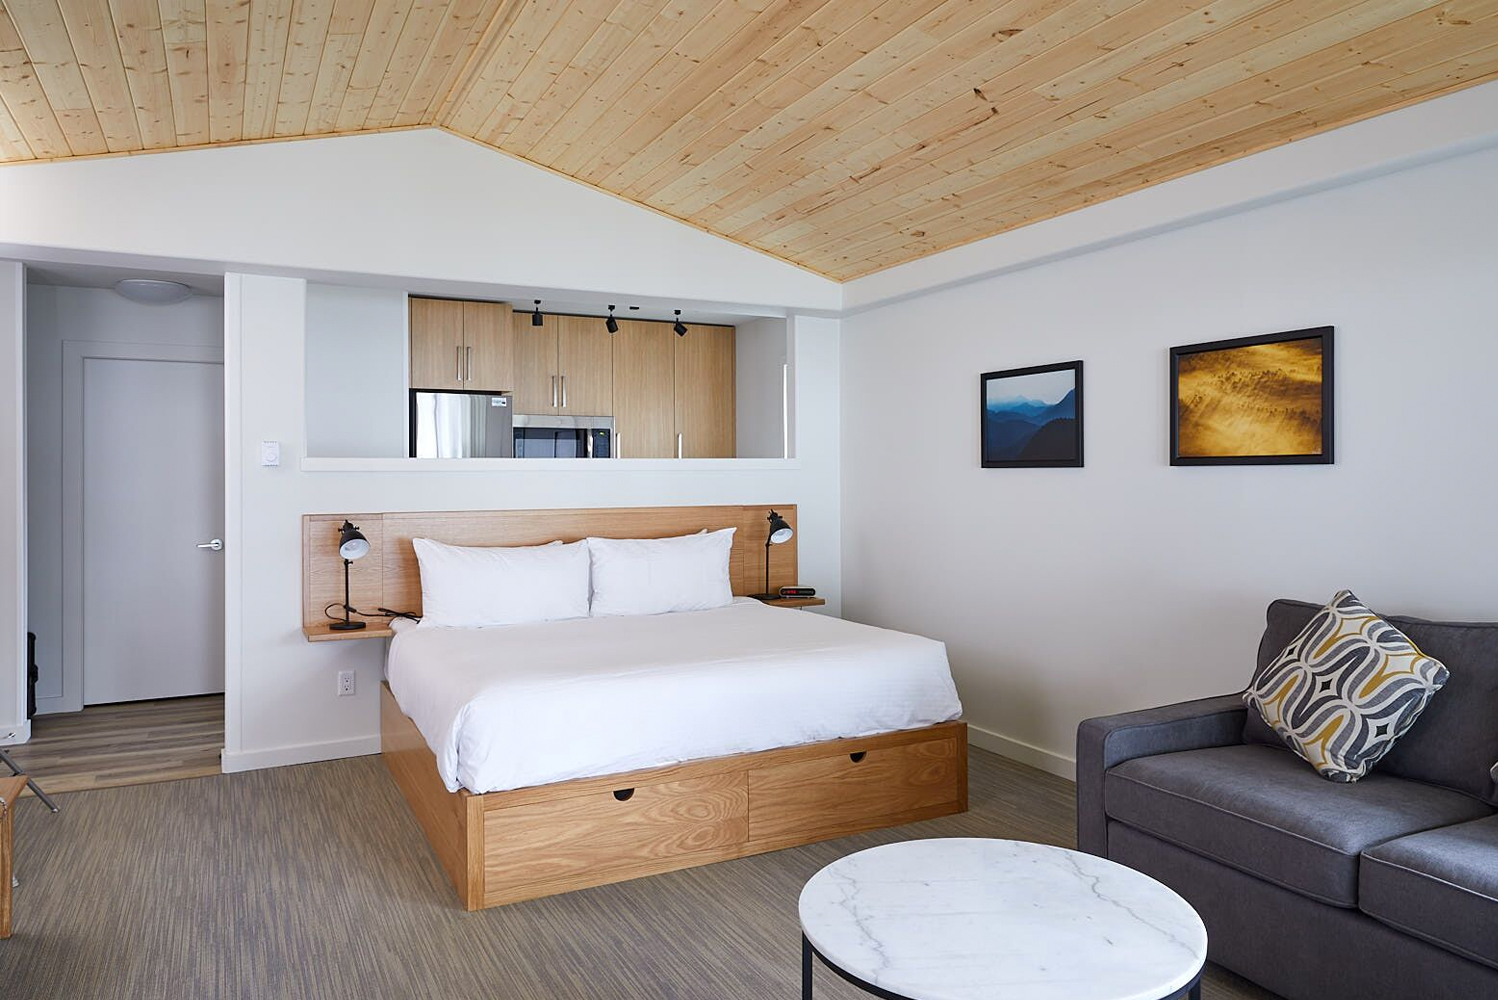 All Lodge Suites are situated steps from the beach with patios overlooking the Pacific Ocean surf.